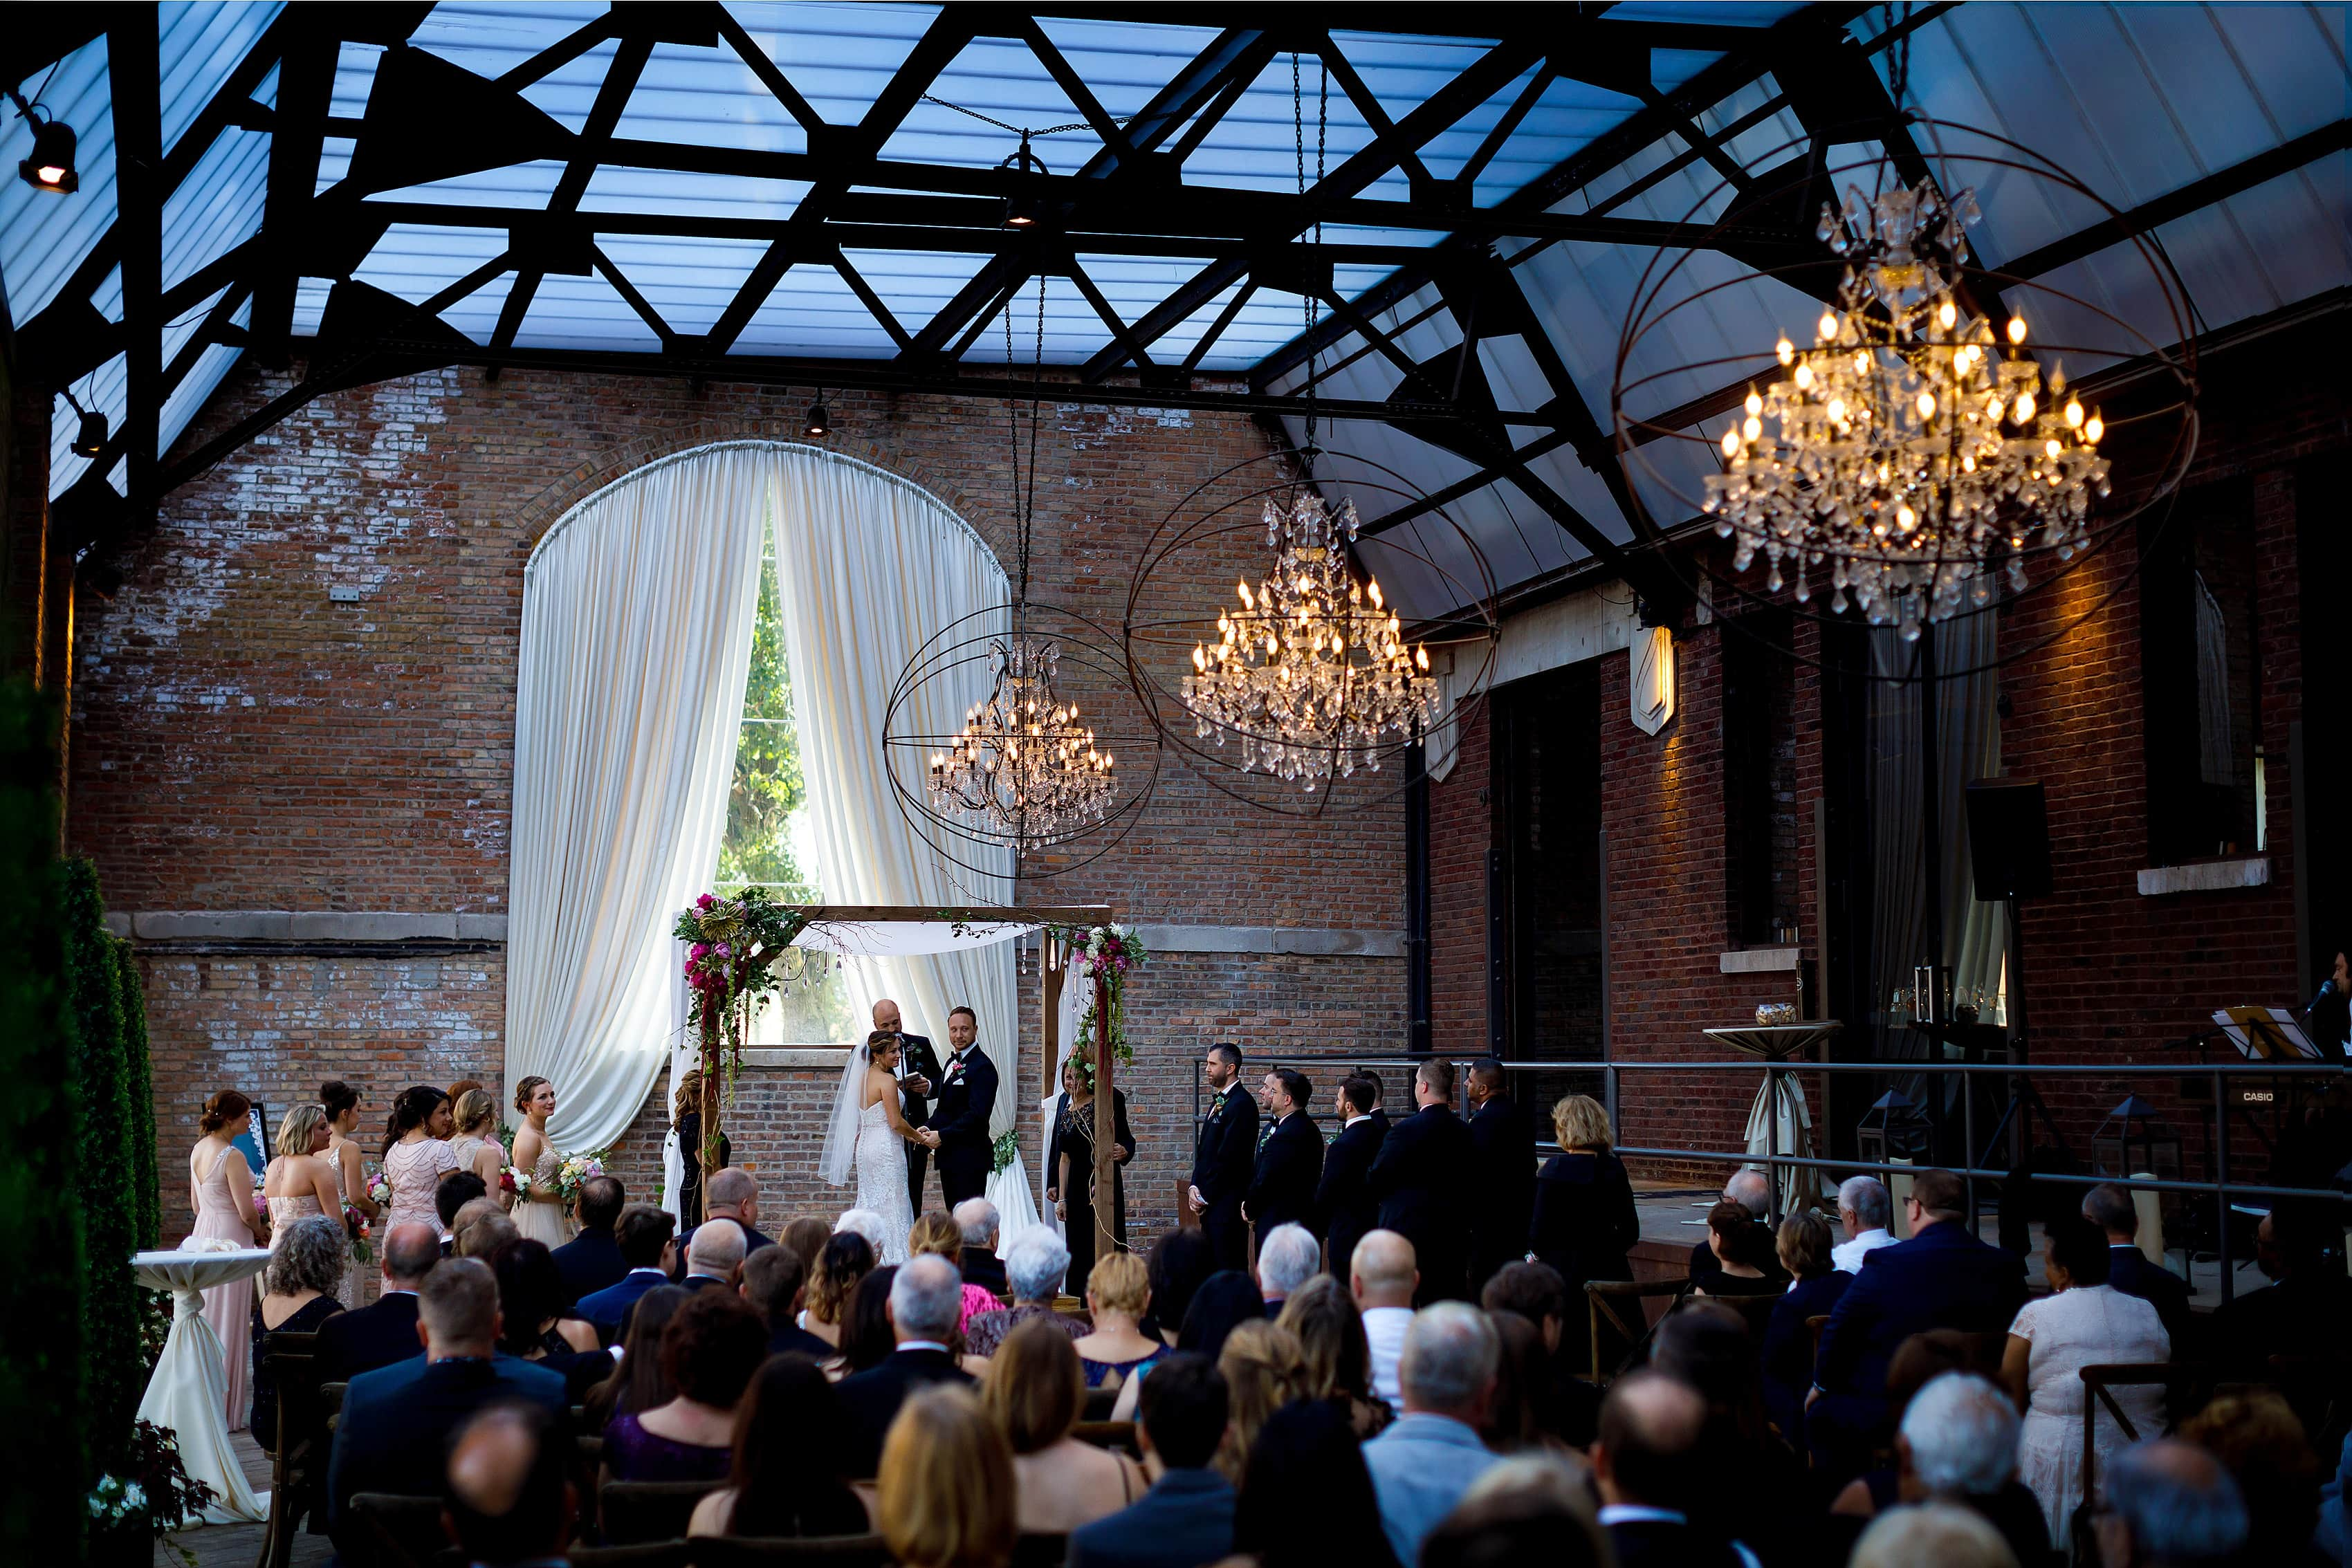 wedding ceremony at Bridgeport Art Center Sculpture Garden in Chicago